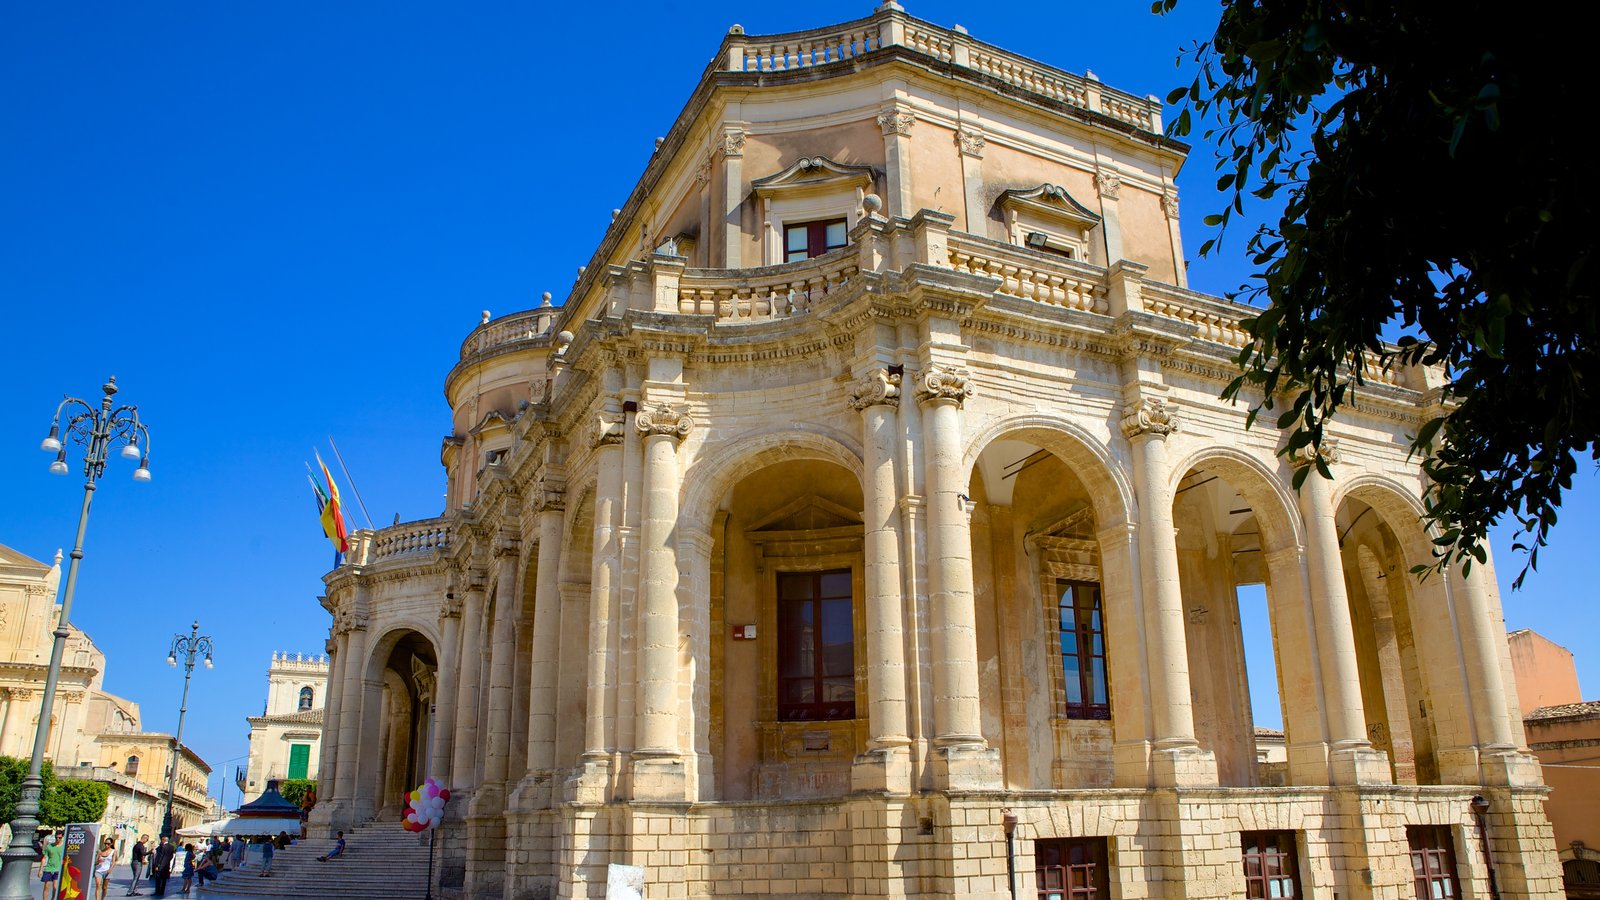 Ducezio Palace which includes street scenes, heritage elements and heritage architecture